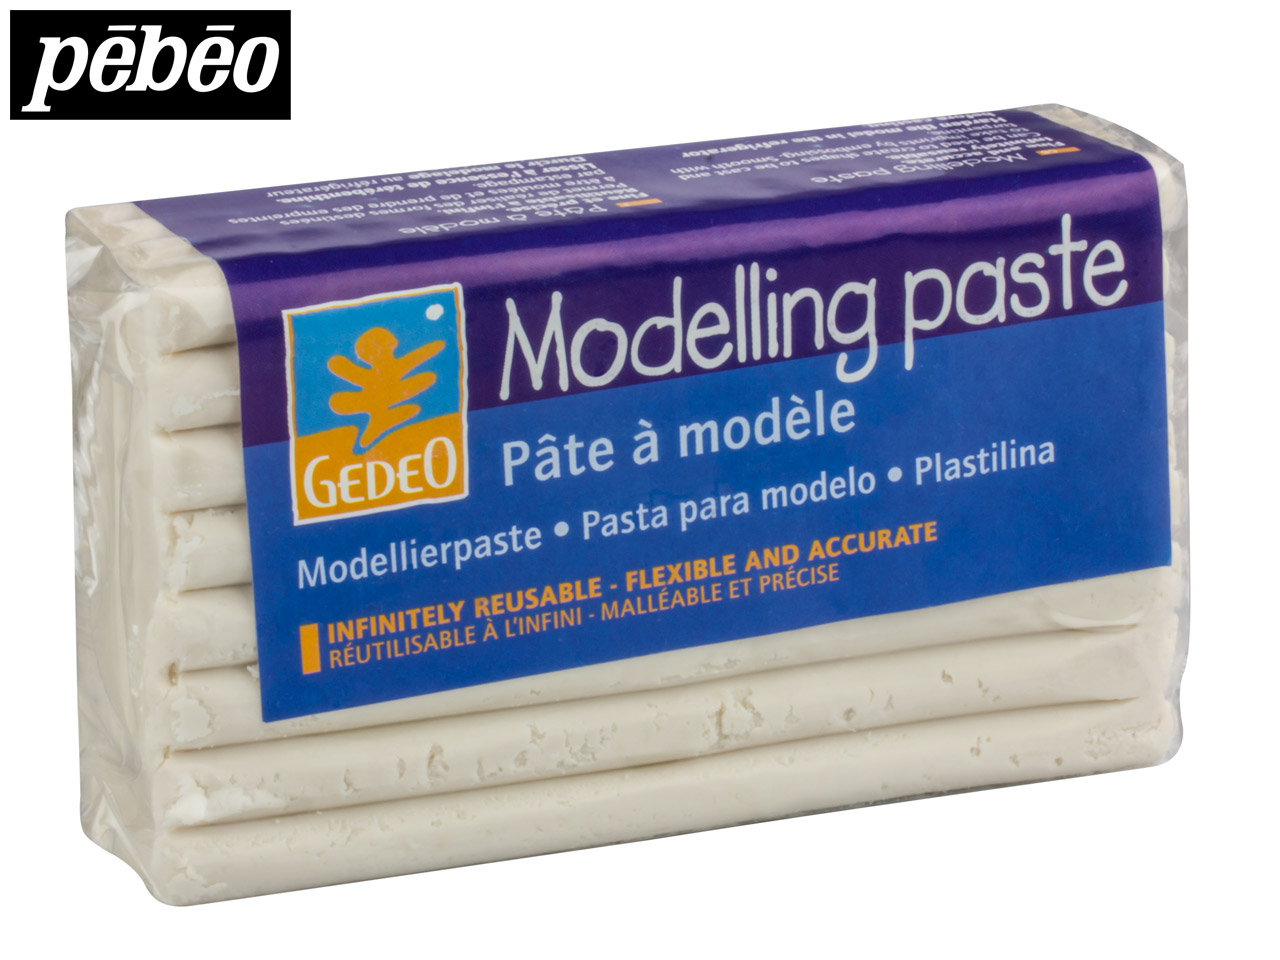 Gedeo Modelling Paste, 500g